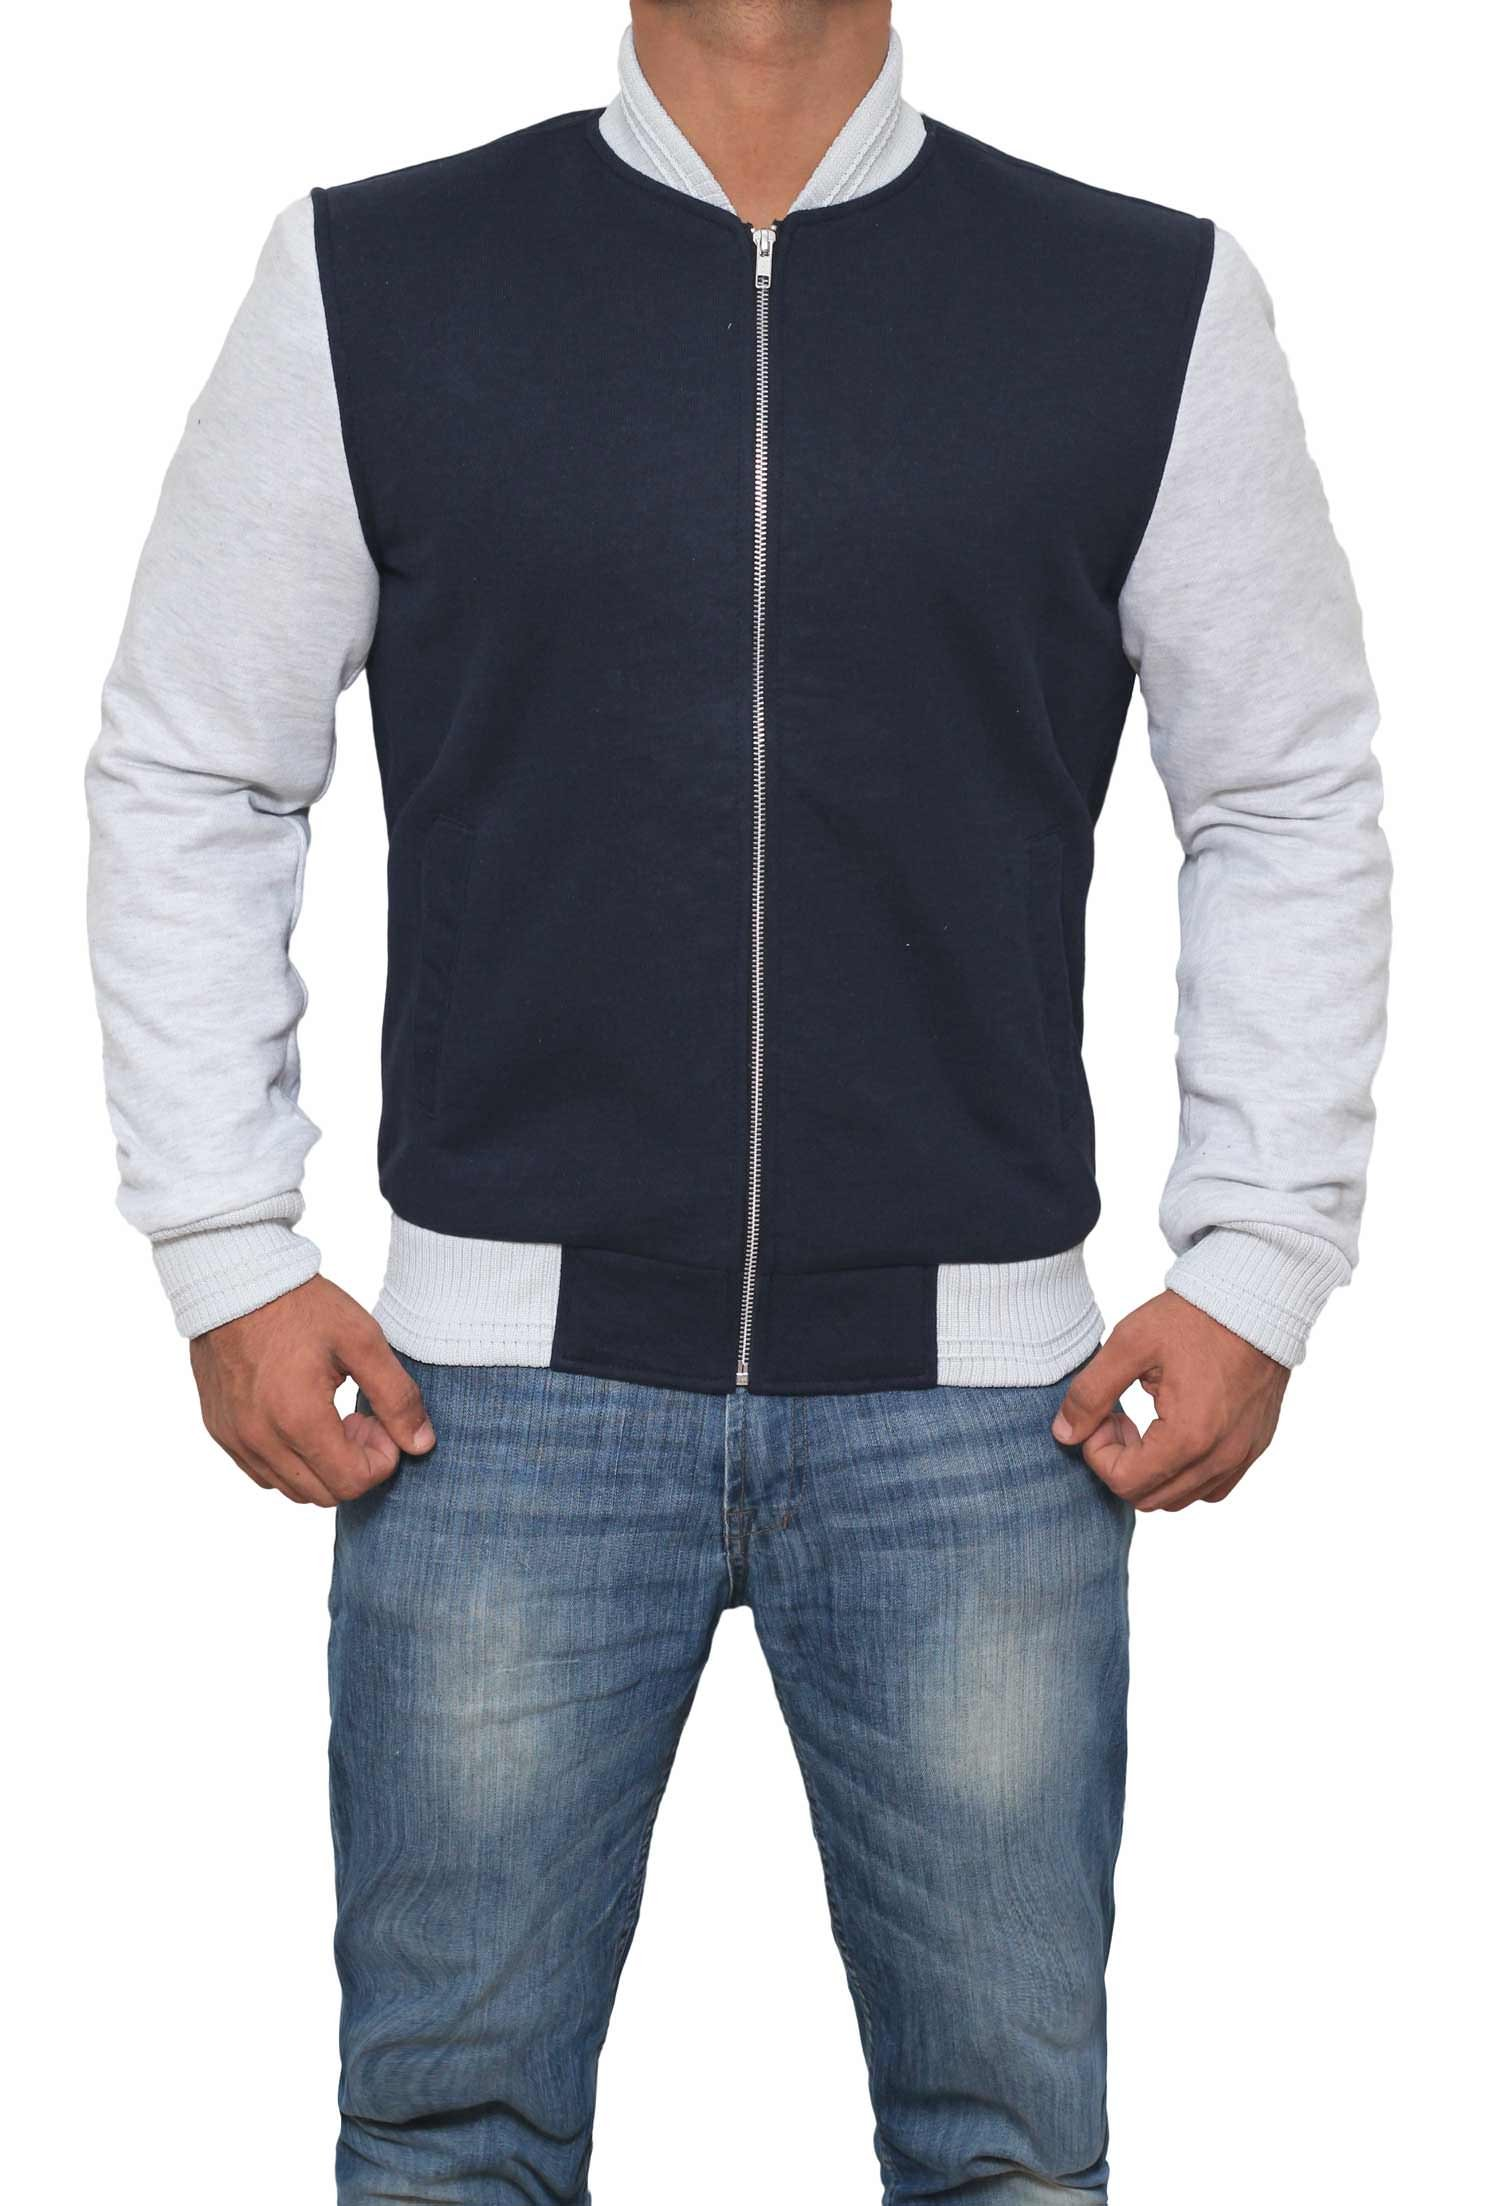 Mens Baby Driver Angel Elgort Blue Letterman Jacket | S